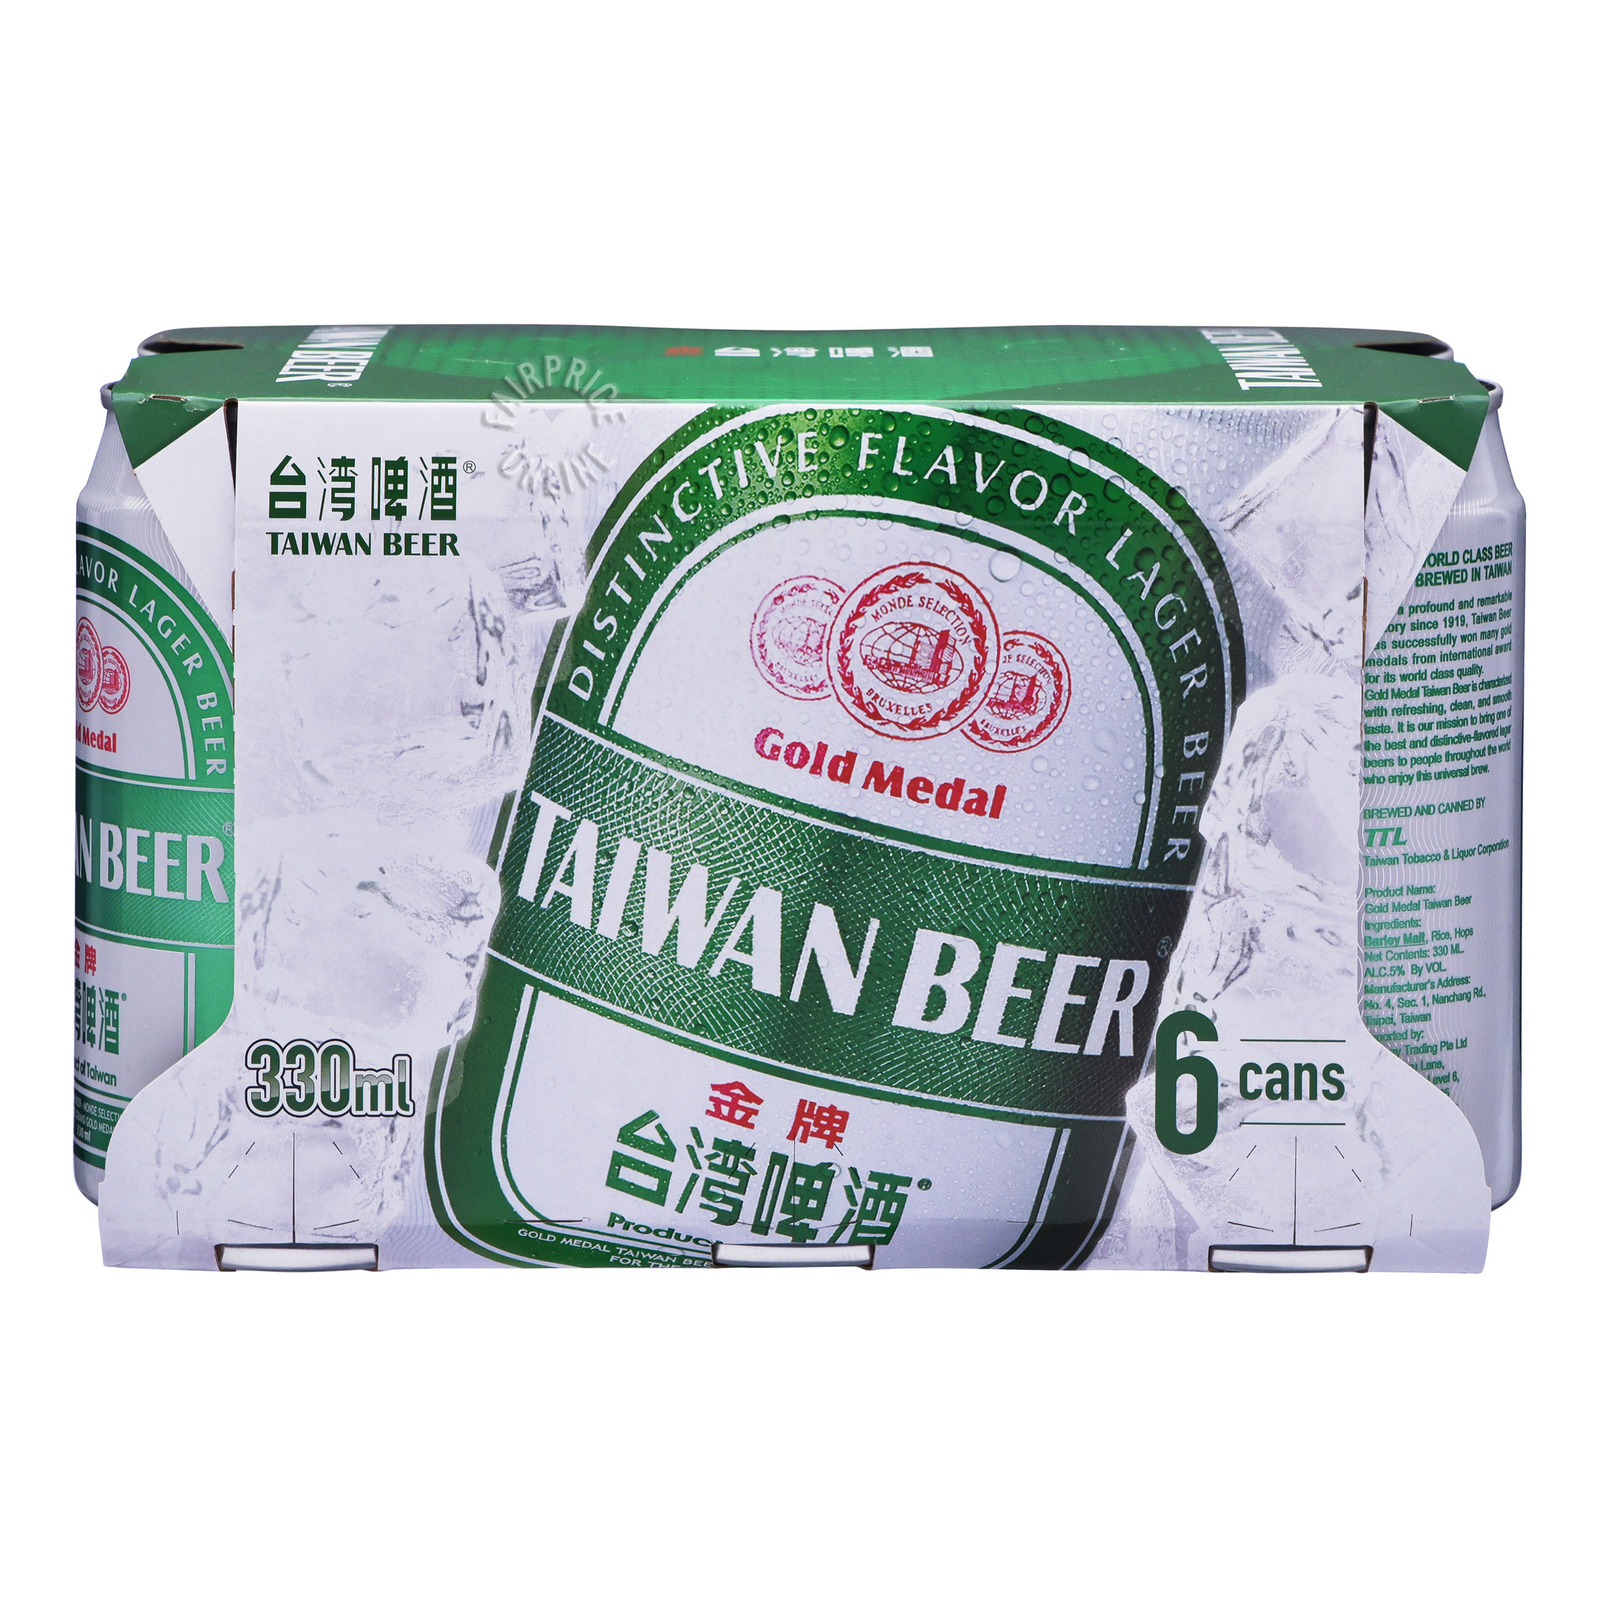 GOLD MEDAL Taiwan Beer 6sX330ml